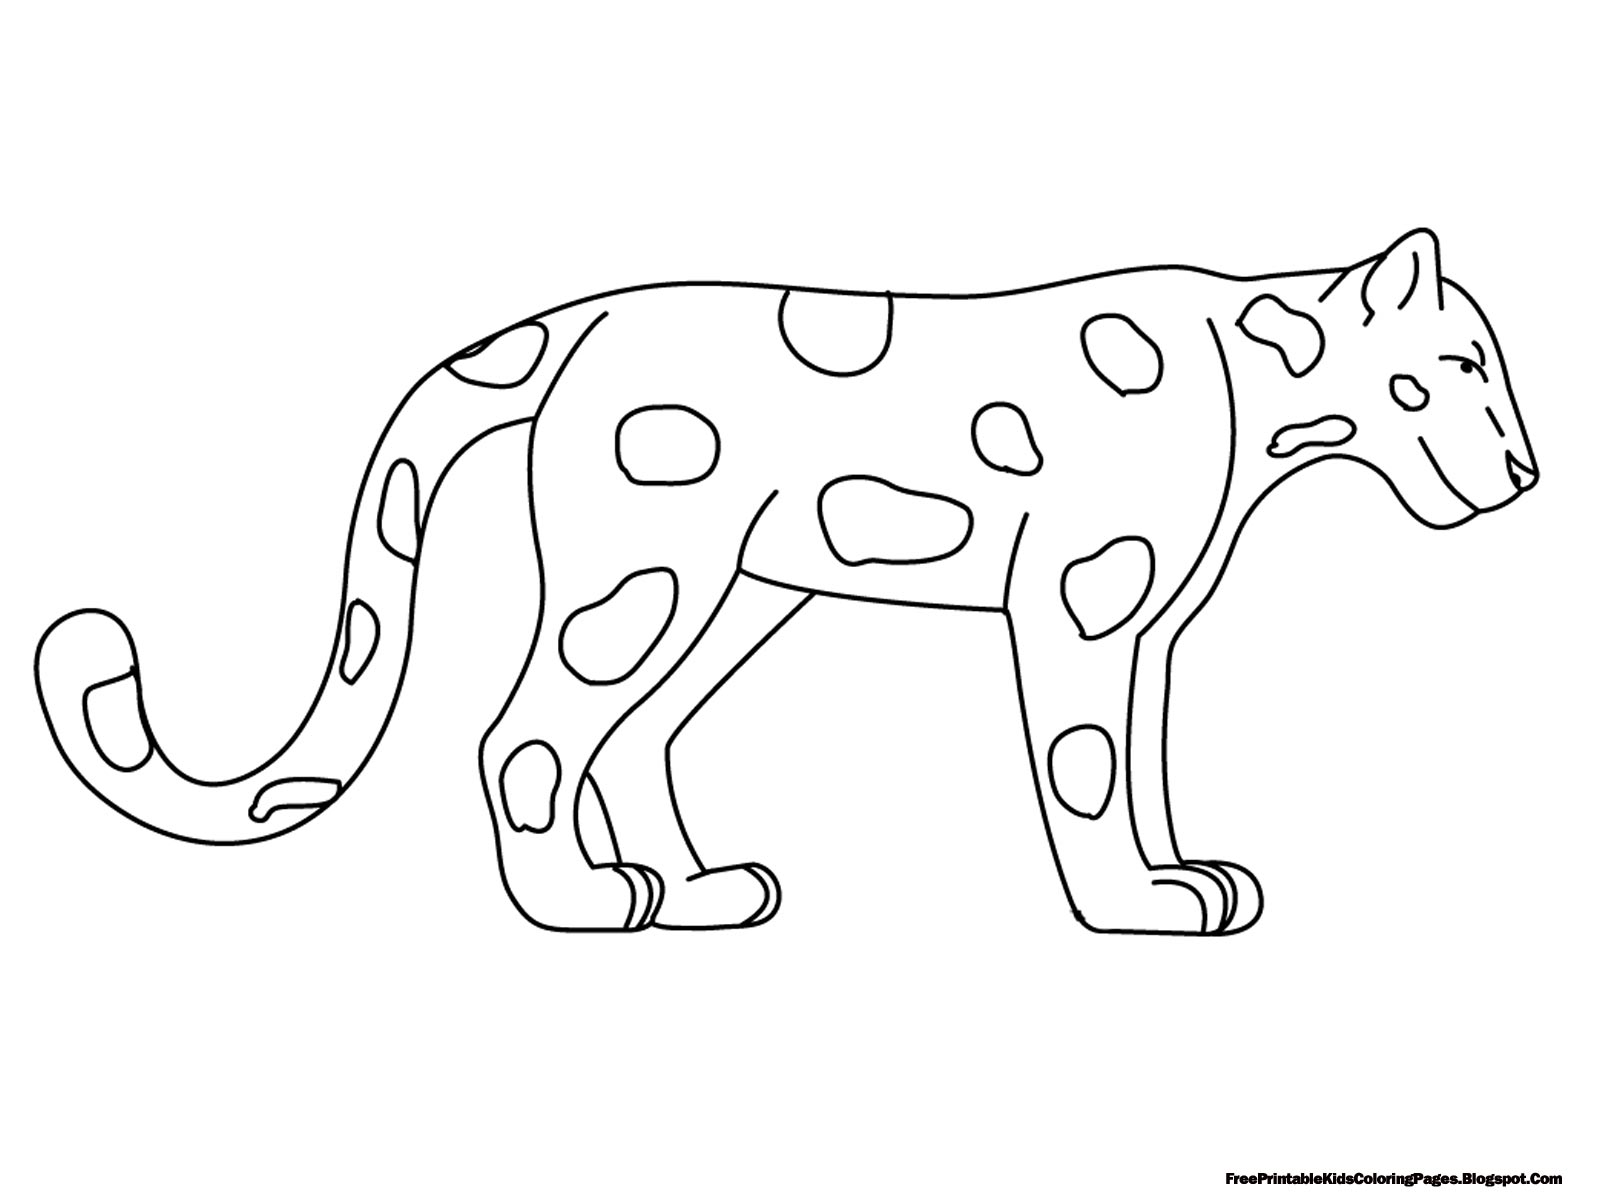 jaguar pictures to print coloring pages of jaguars printable bowstomatch print jaguar to pictures